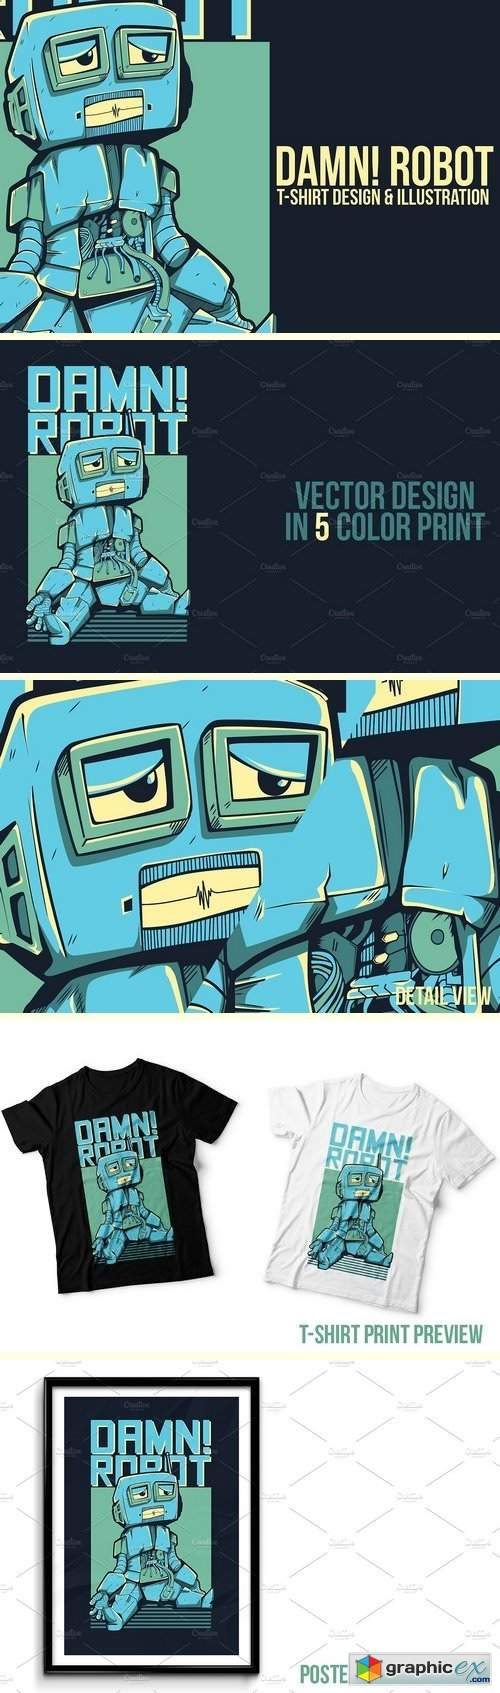 Damn! Robot Illustration